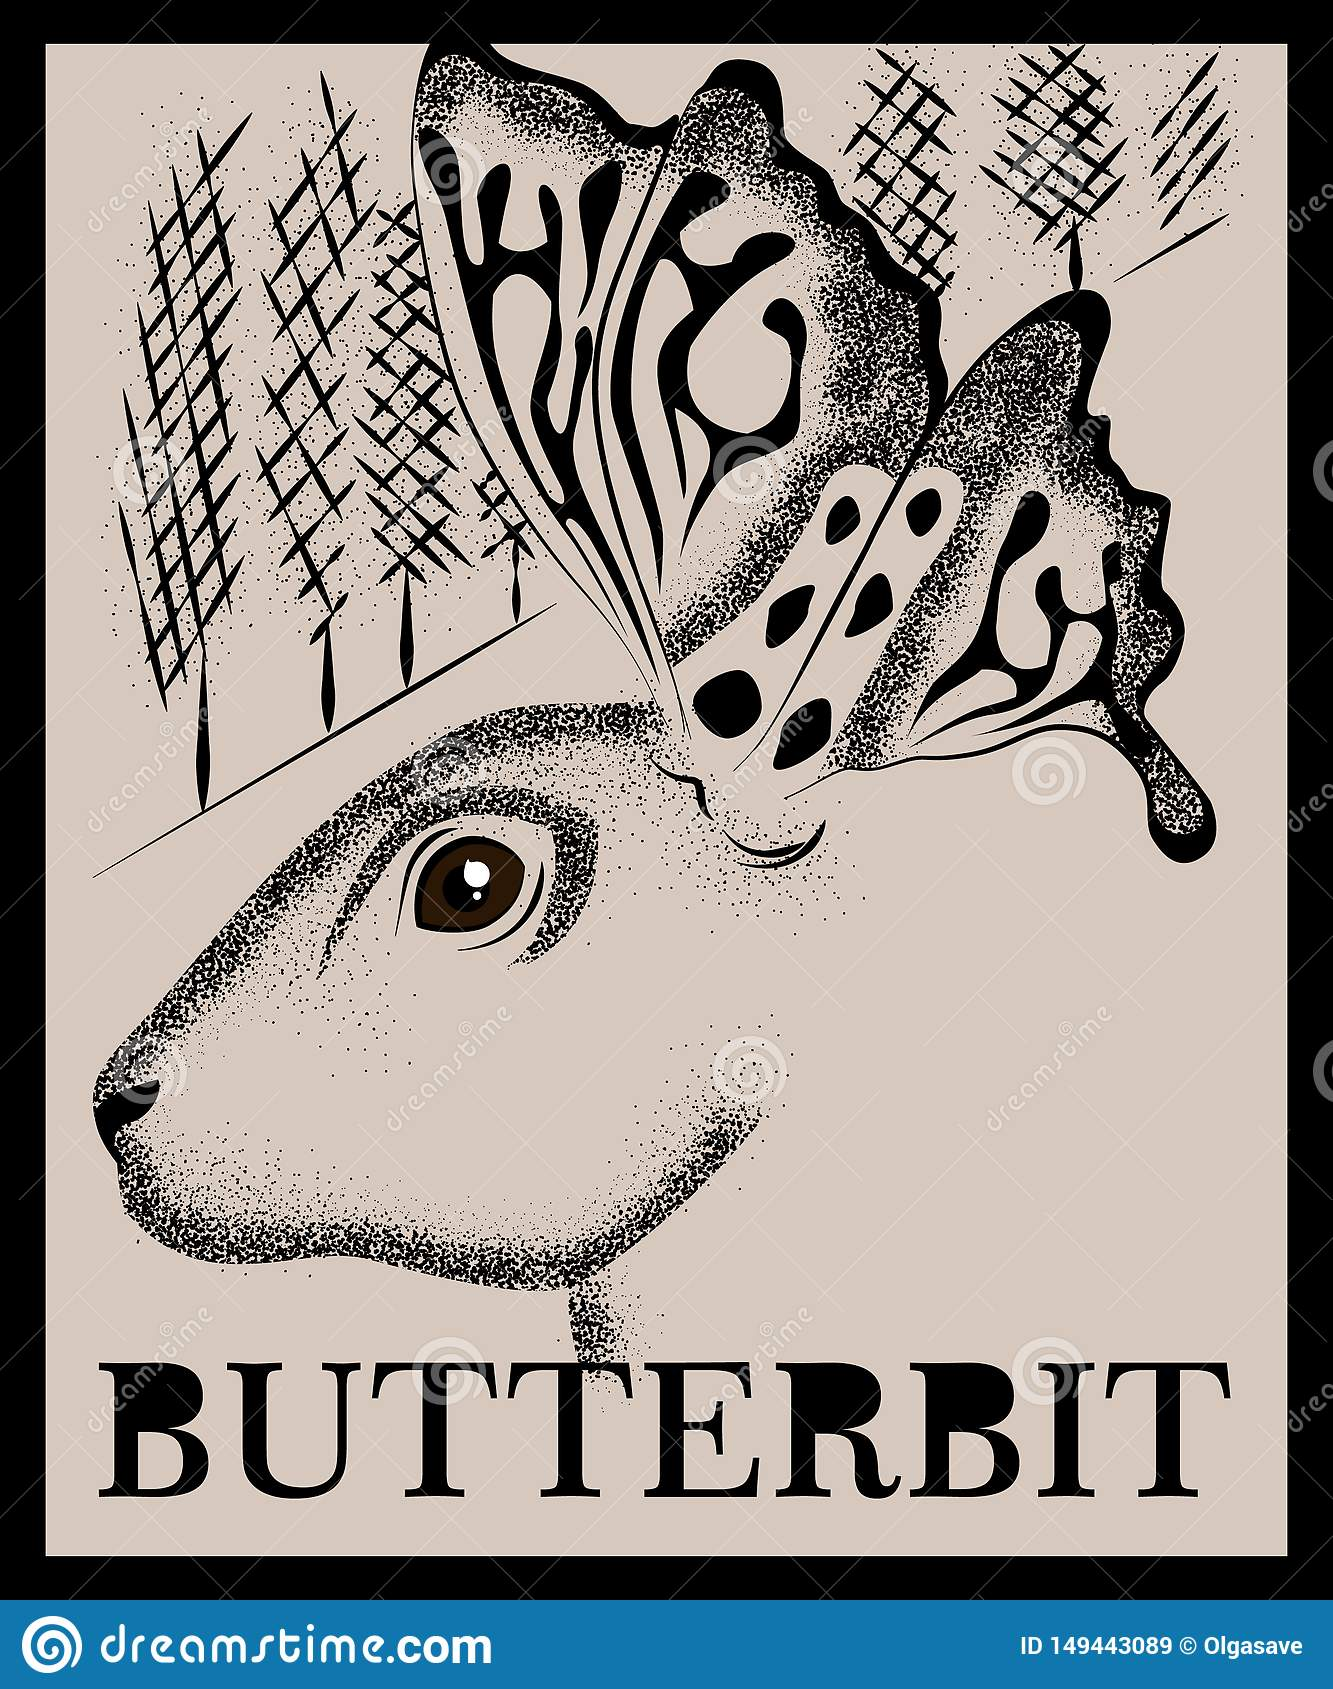 Dotted rabbit drawing with butterfly wings